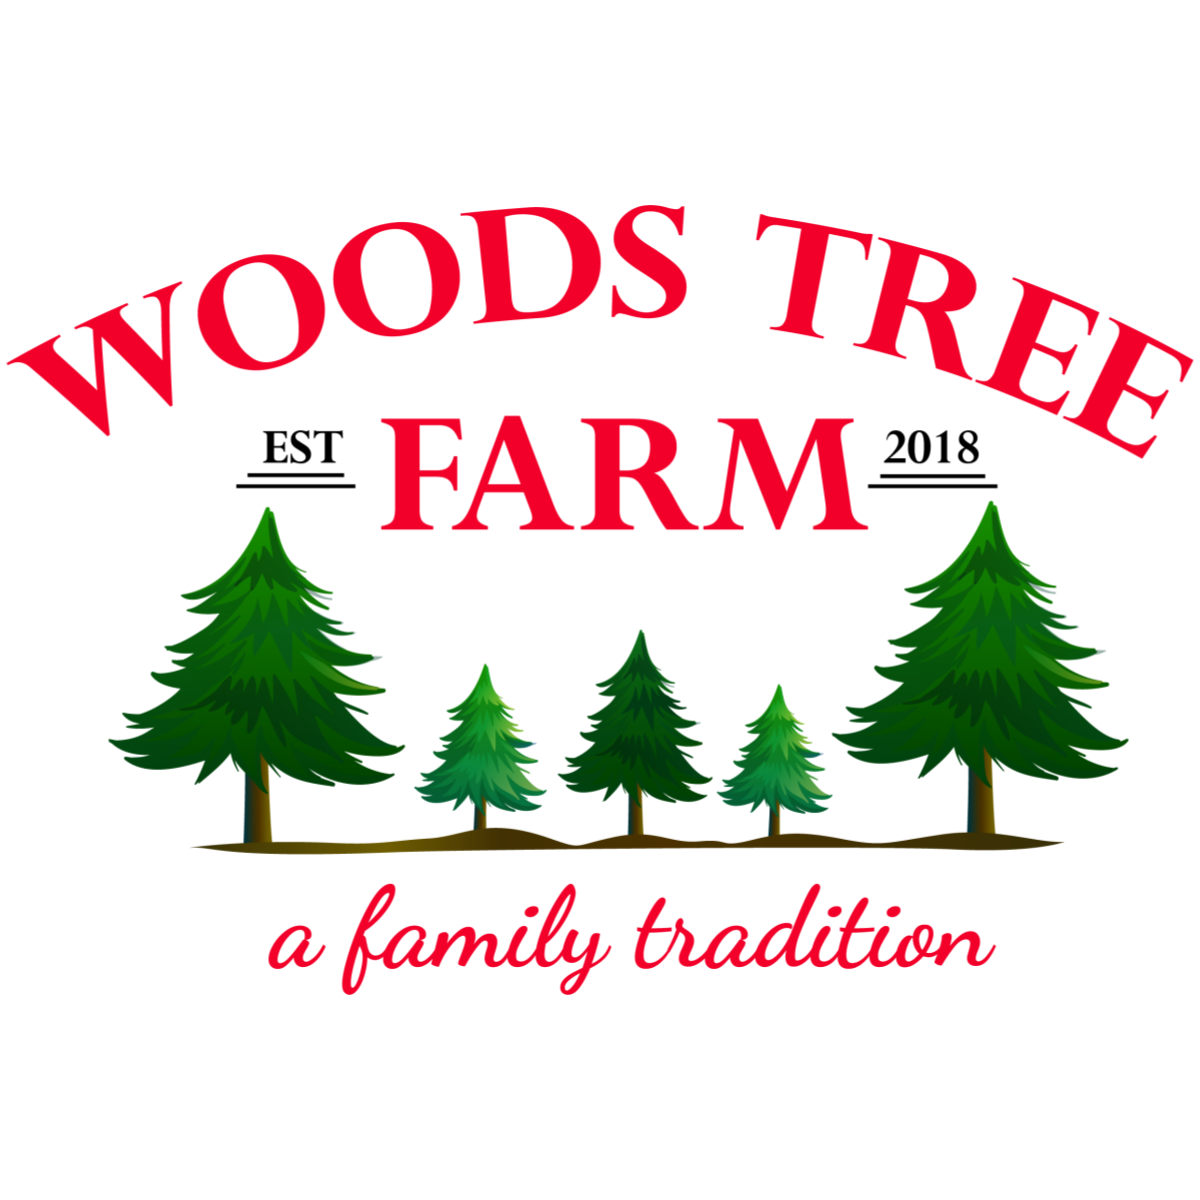 Woods Tree Farm